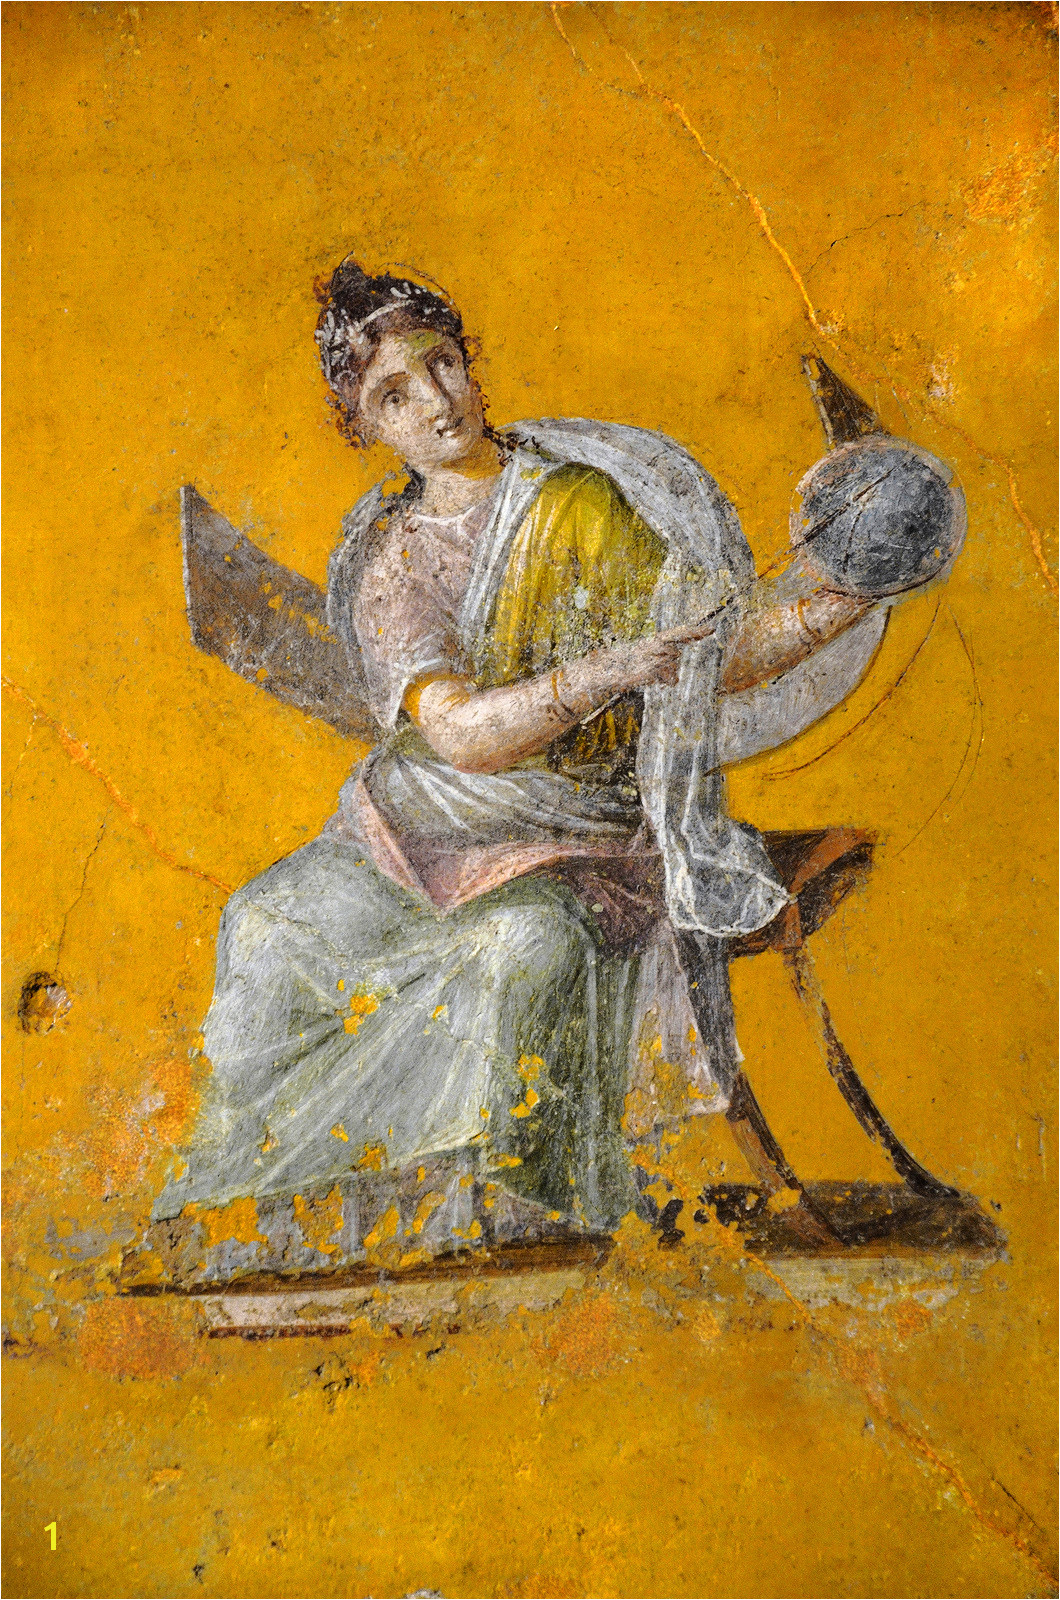 Ancient Roman Murals Reality Show 1989 — Avvoltoio Roman Frescoes solid Colors 1 the